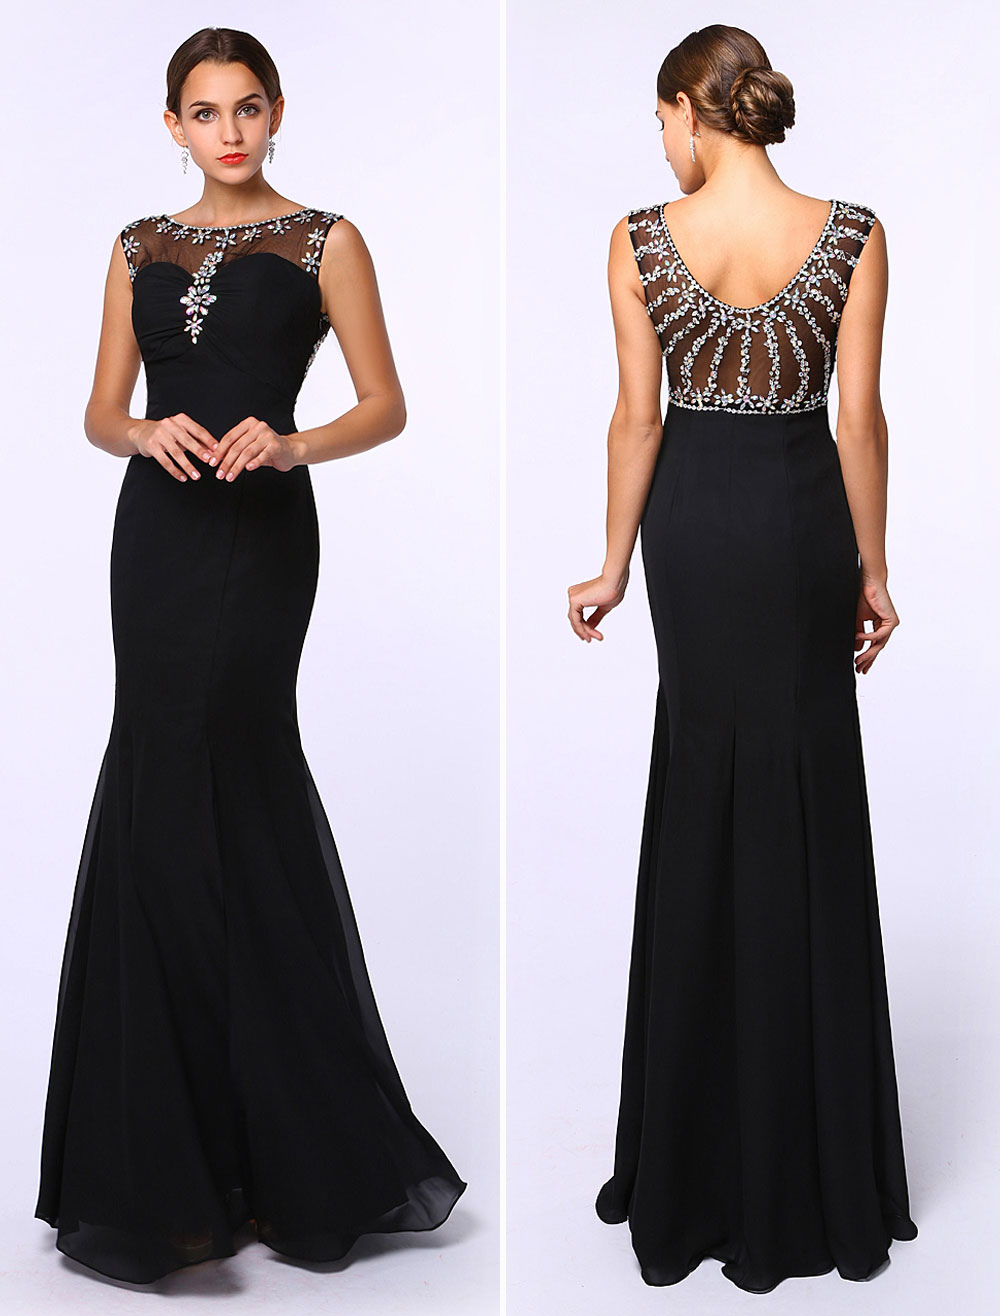 150784a98cadc Black Prom Dresses 2019 Long Mermaid Evening Dress Rhinestones Beading  Chiffon Floor Length Formal Dress Wedding Guest Dress